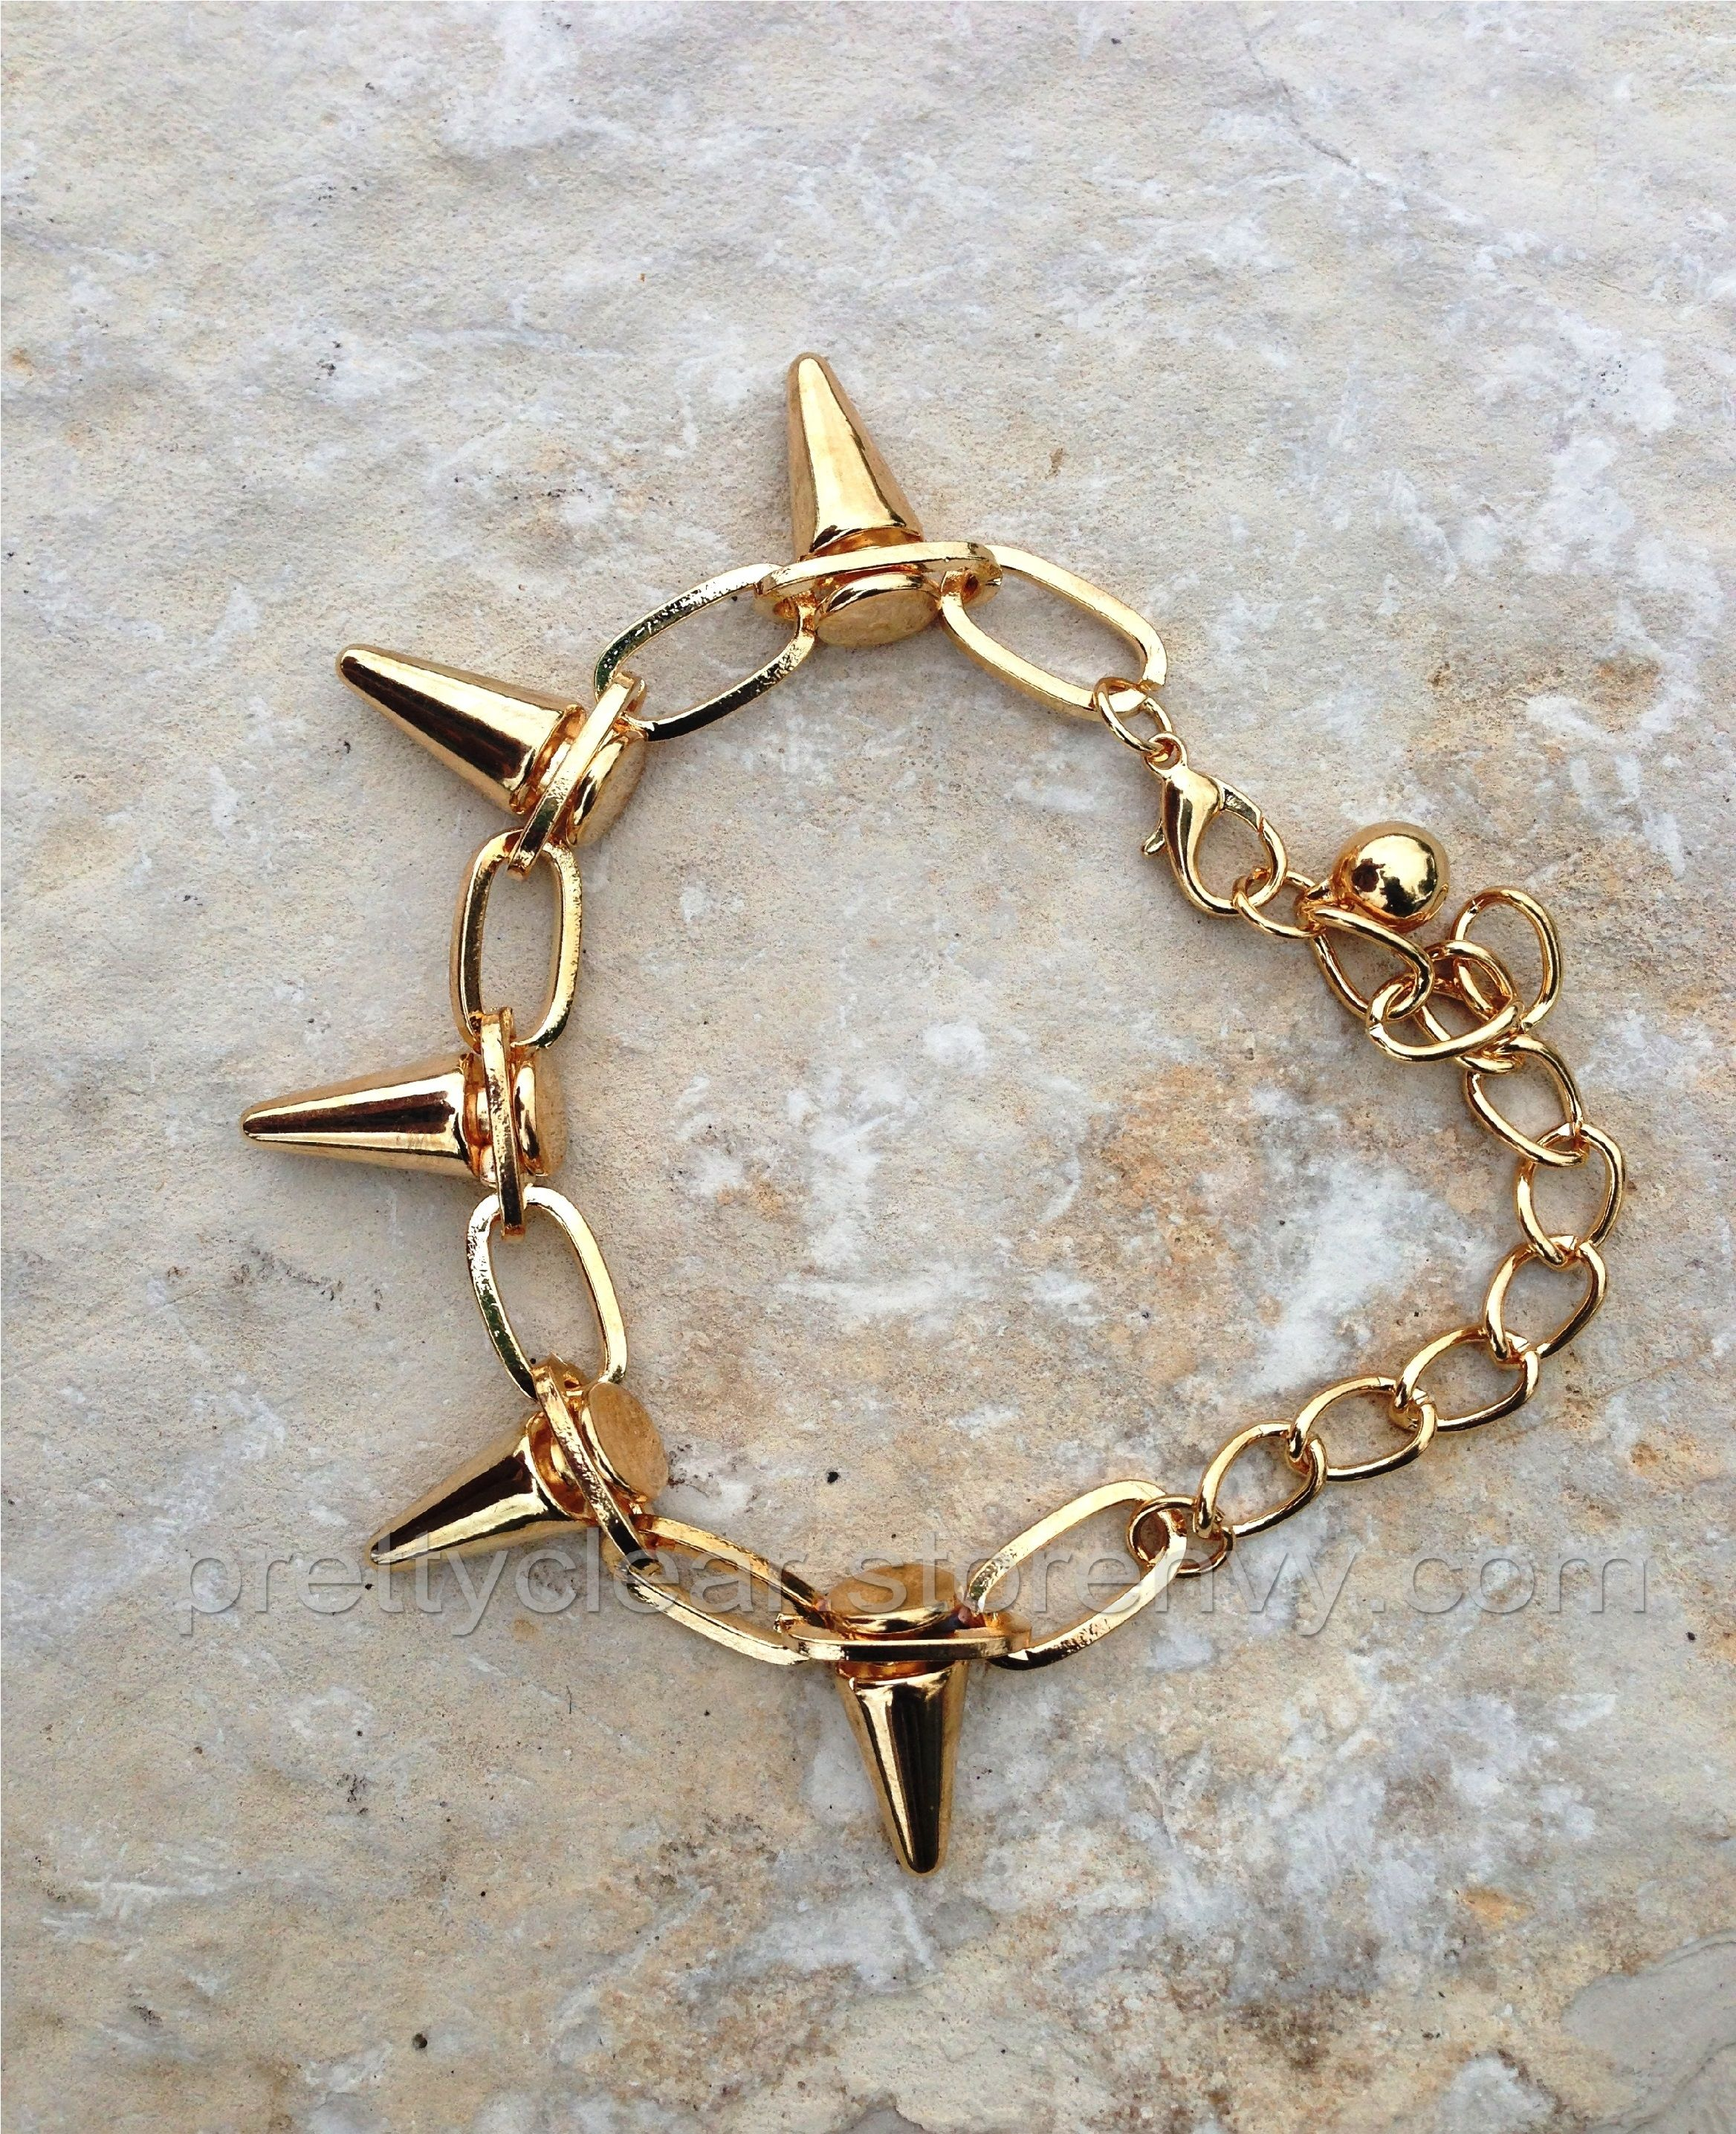 cm in length fashion pinterest bracelets chains and girls